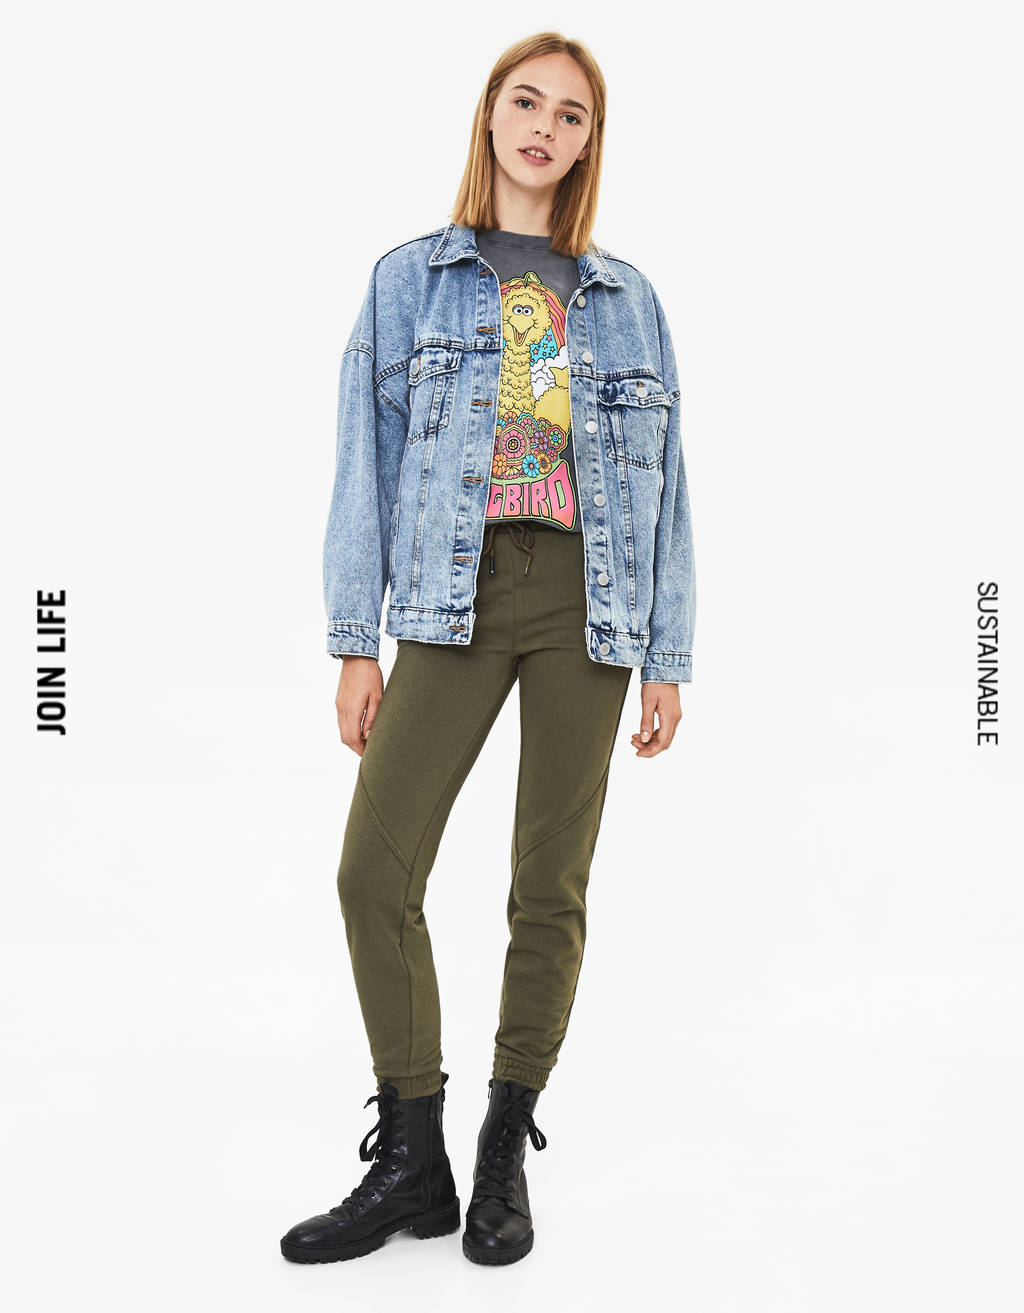 7cee12e52629 Women's Trousers - Spring Summer 2019 | Bershka